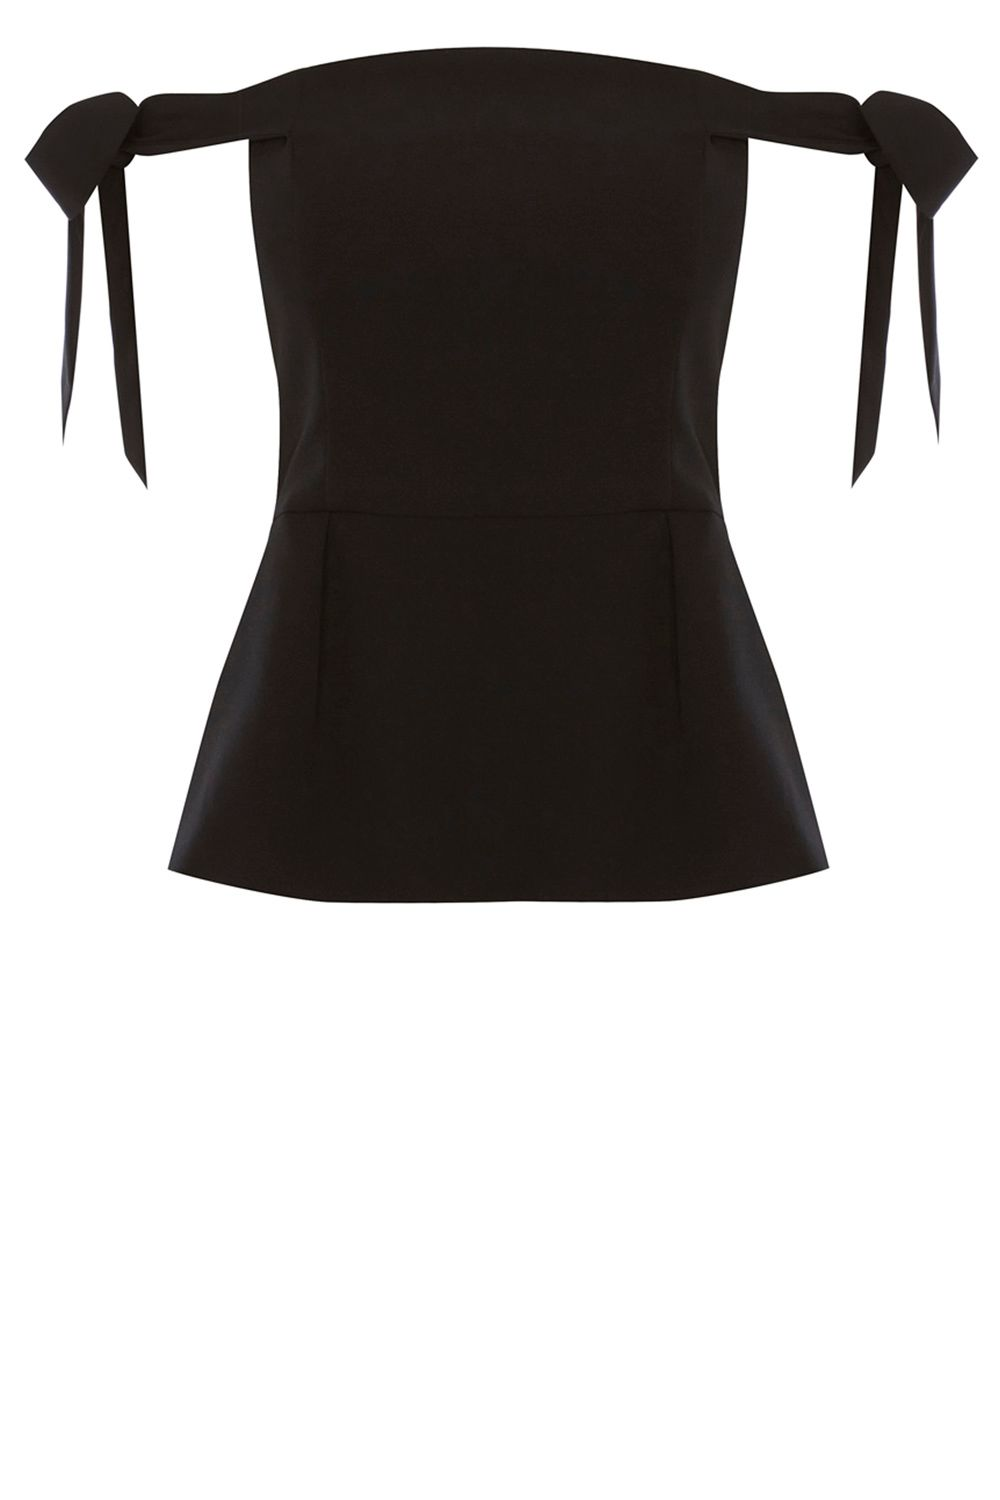 Coast Naz Tie Peplum Top, Black